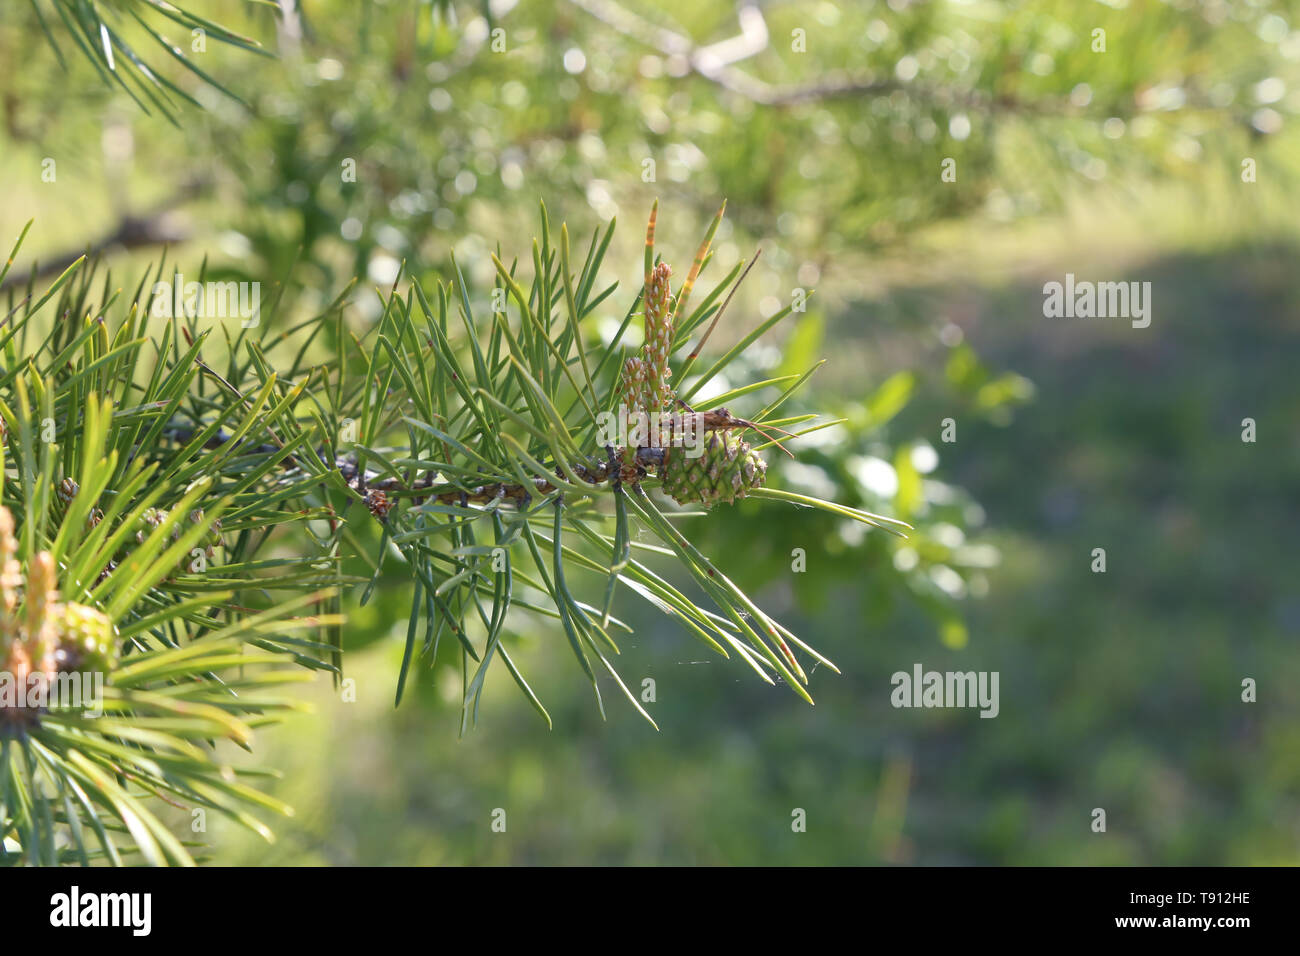 Green pine branch in the coniferous forest - Stock Image